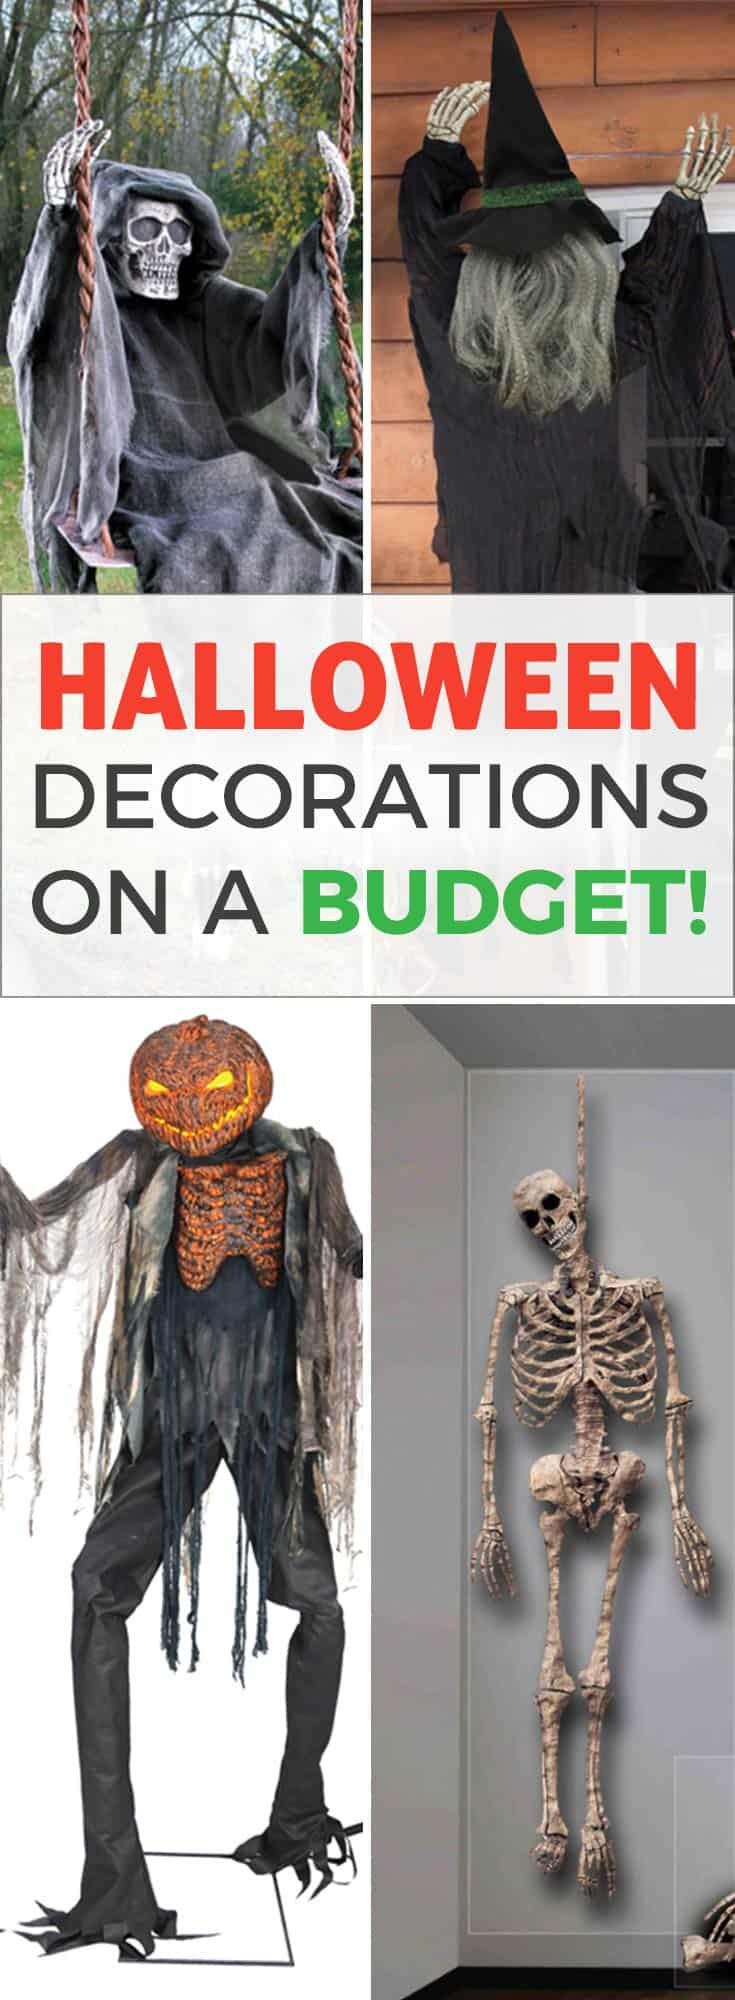 Halloween Decorations Outdoor and for Home on a Budget. With my affiliate link you get an EXCLUSIVE OFFER! <font color=